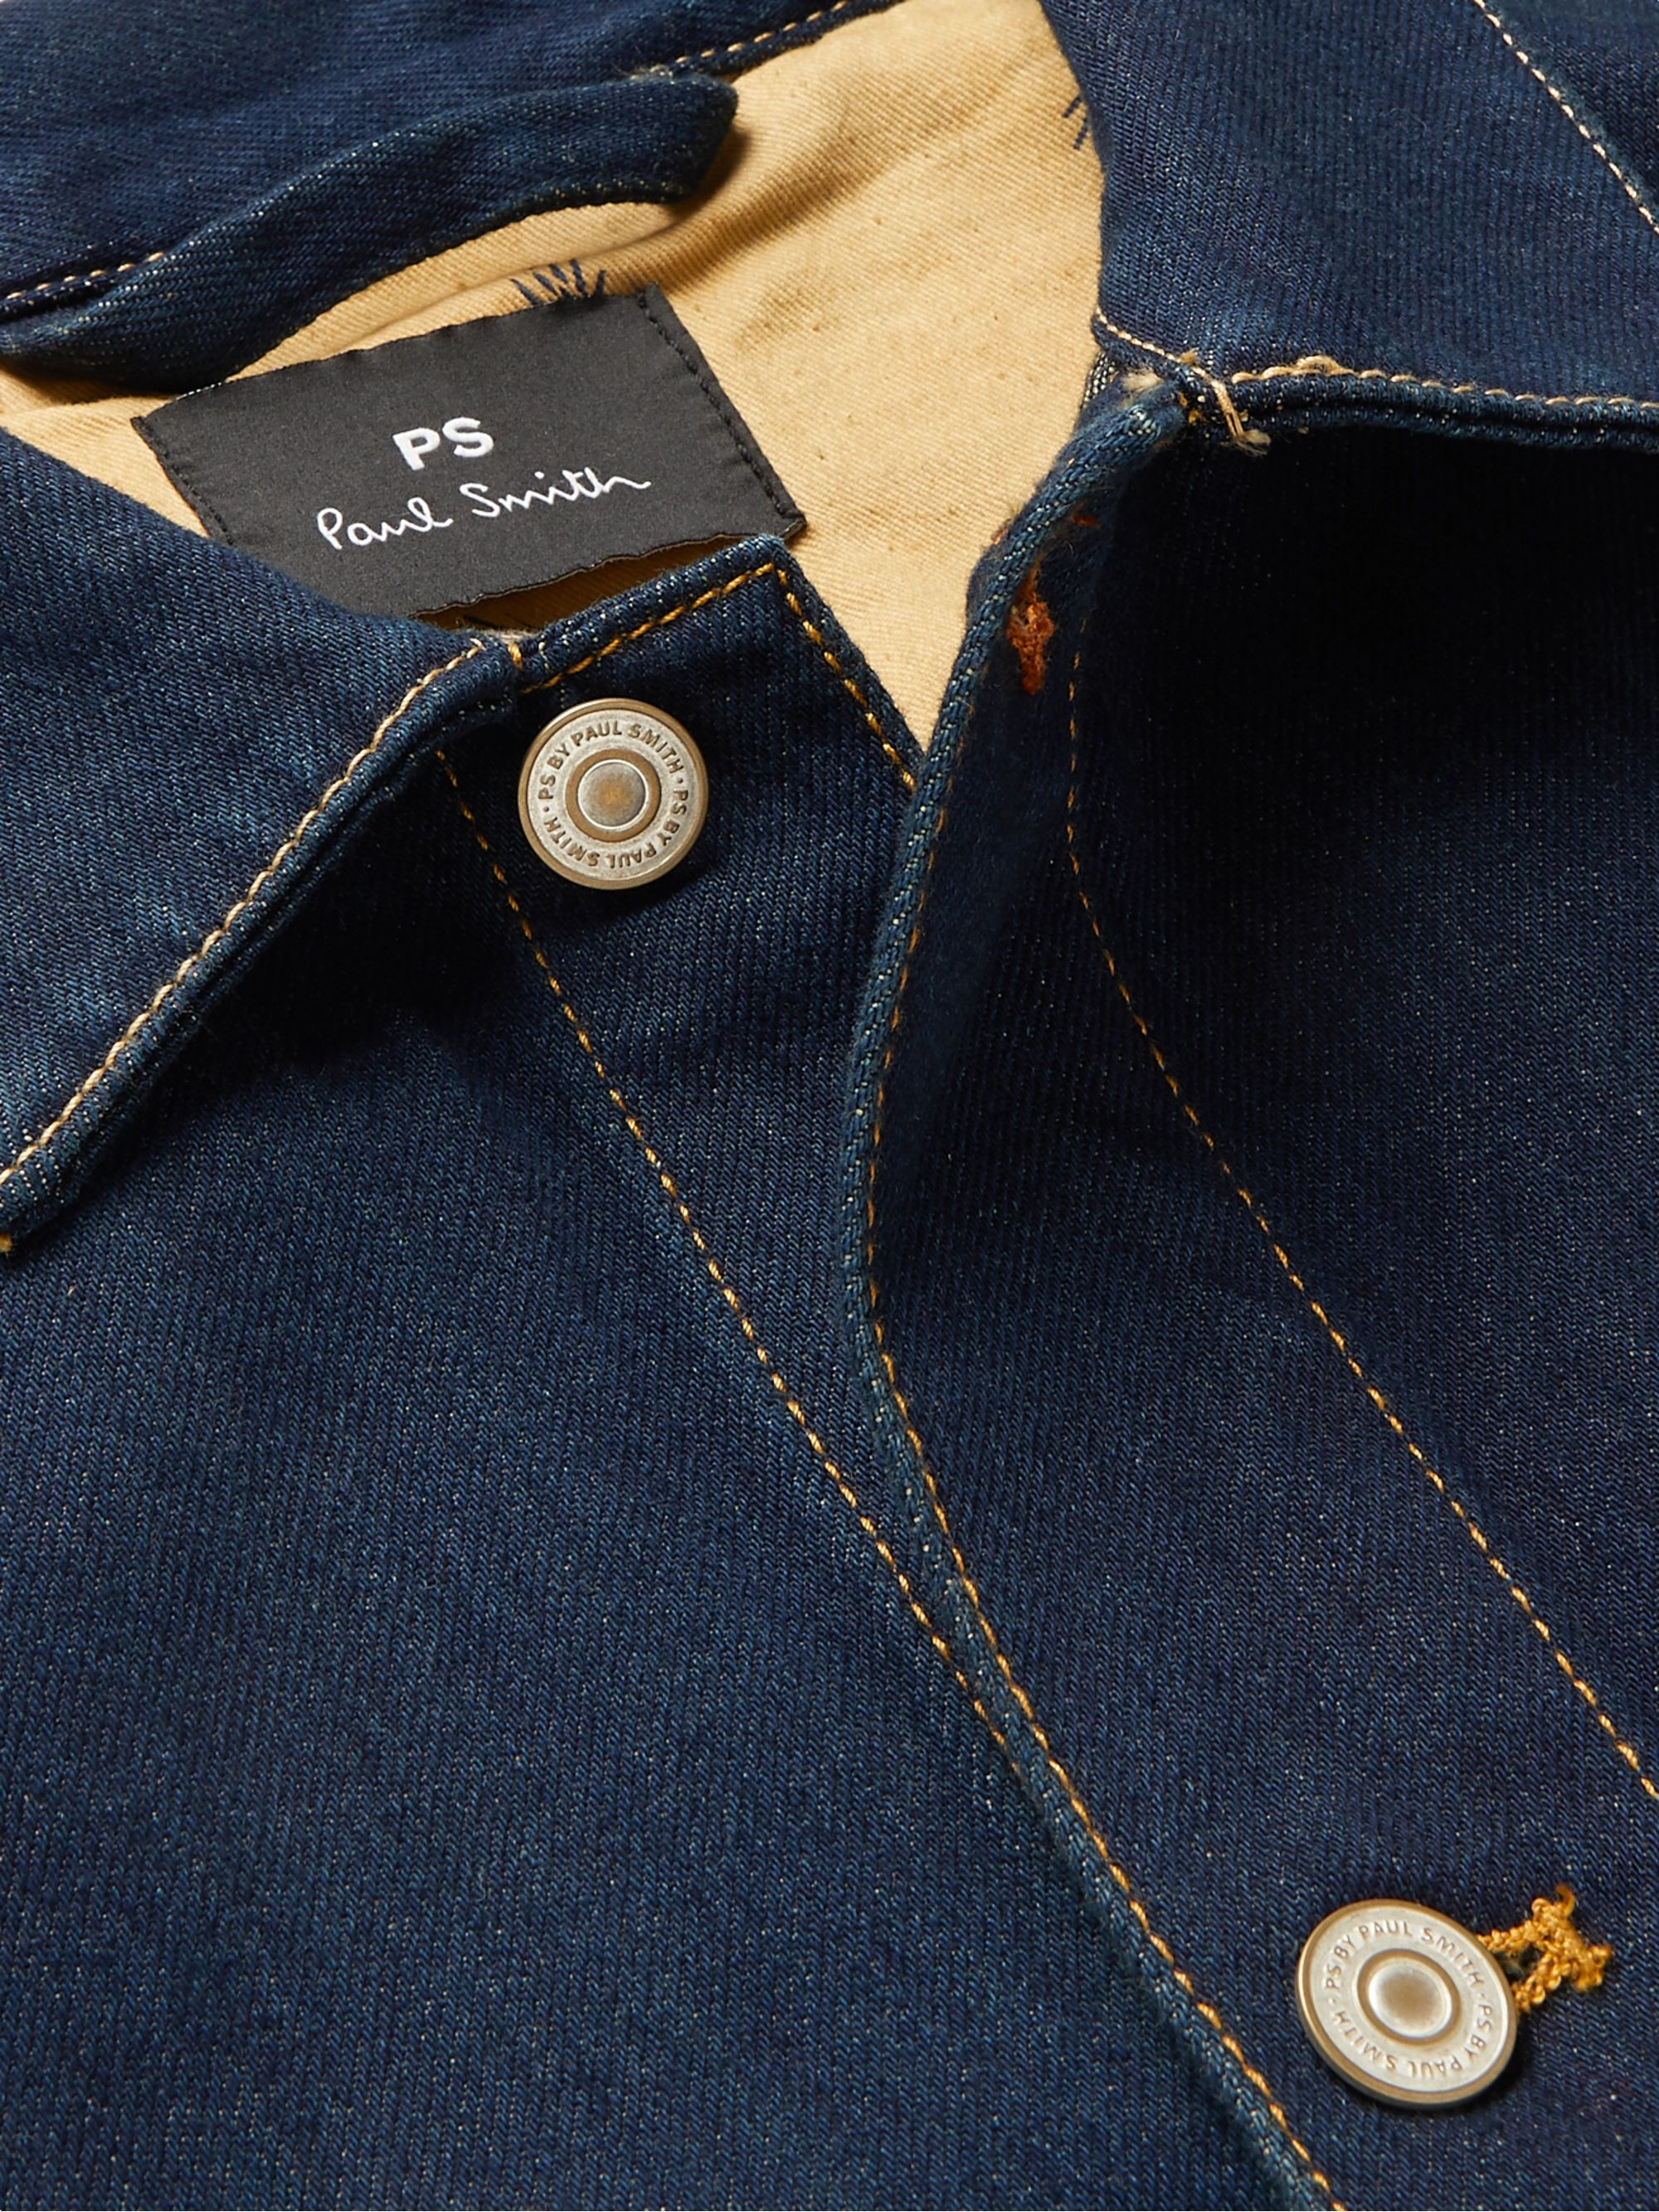 PS Paul Smith Embroidered Denim Jacket